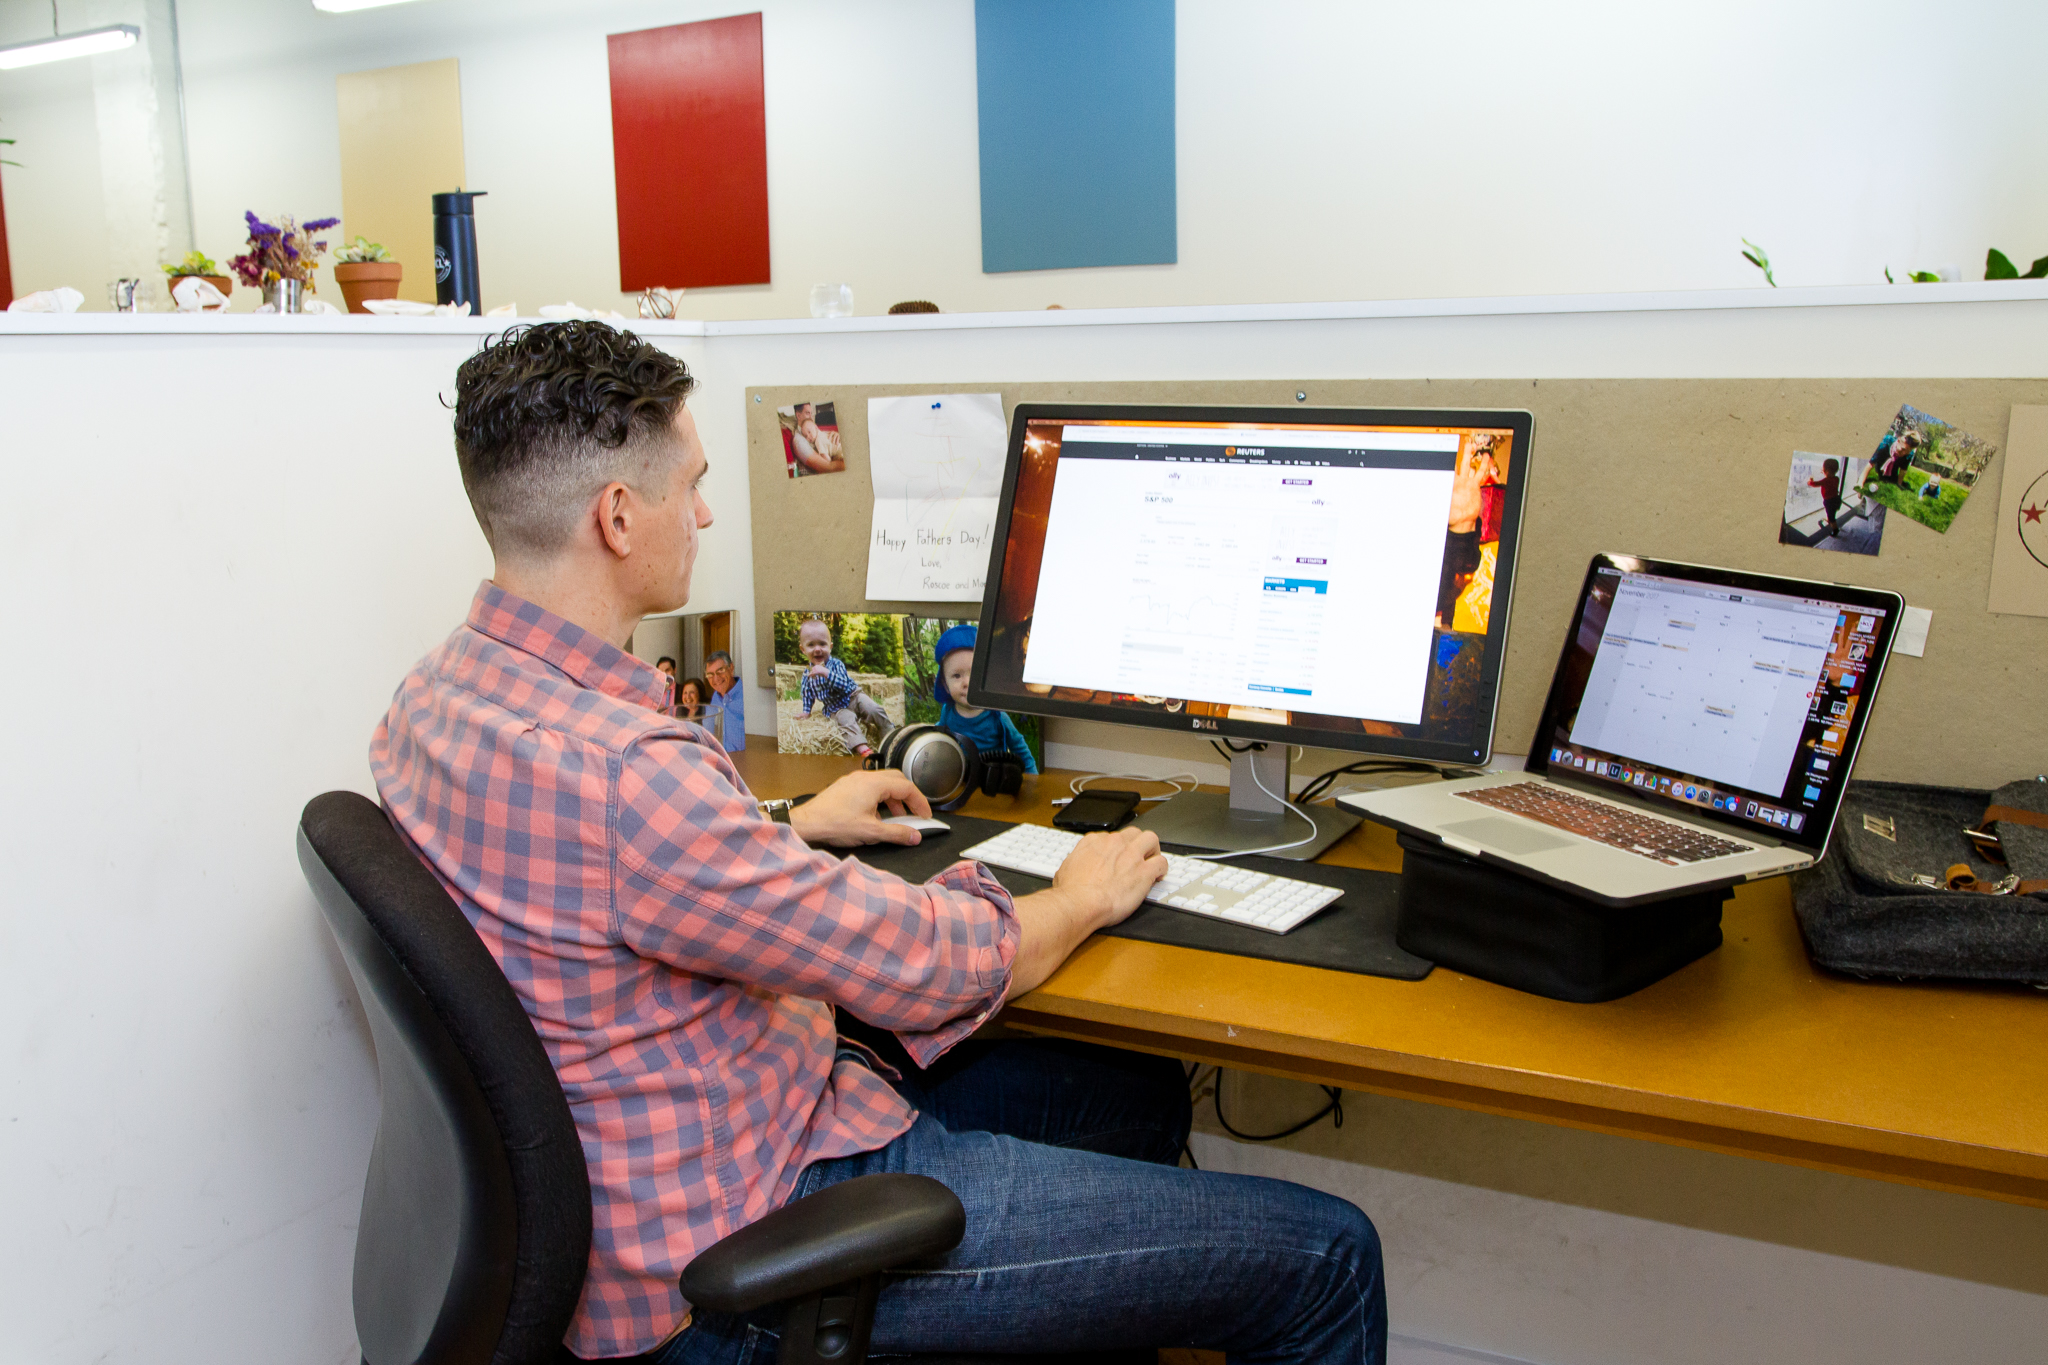 Advantages of coworking for mission-driven organizations -